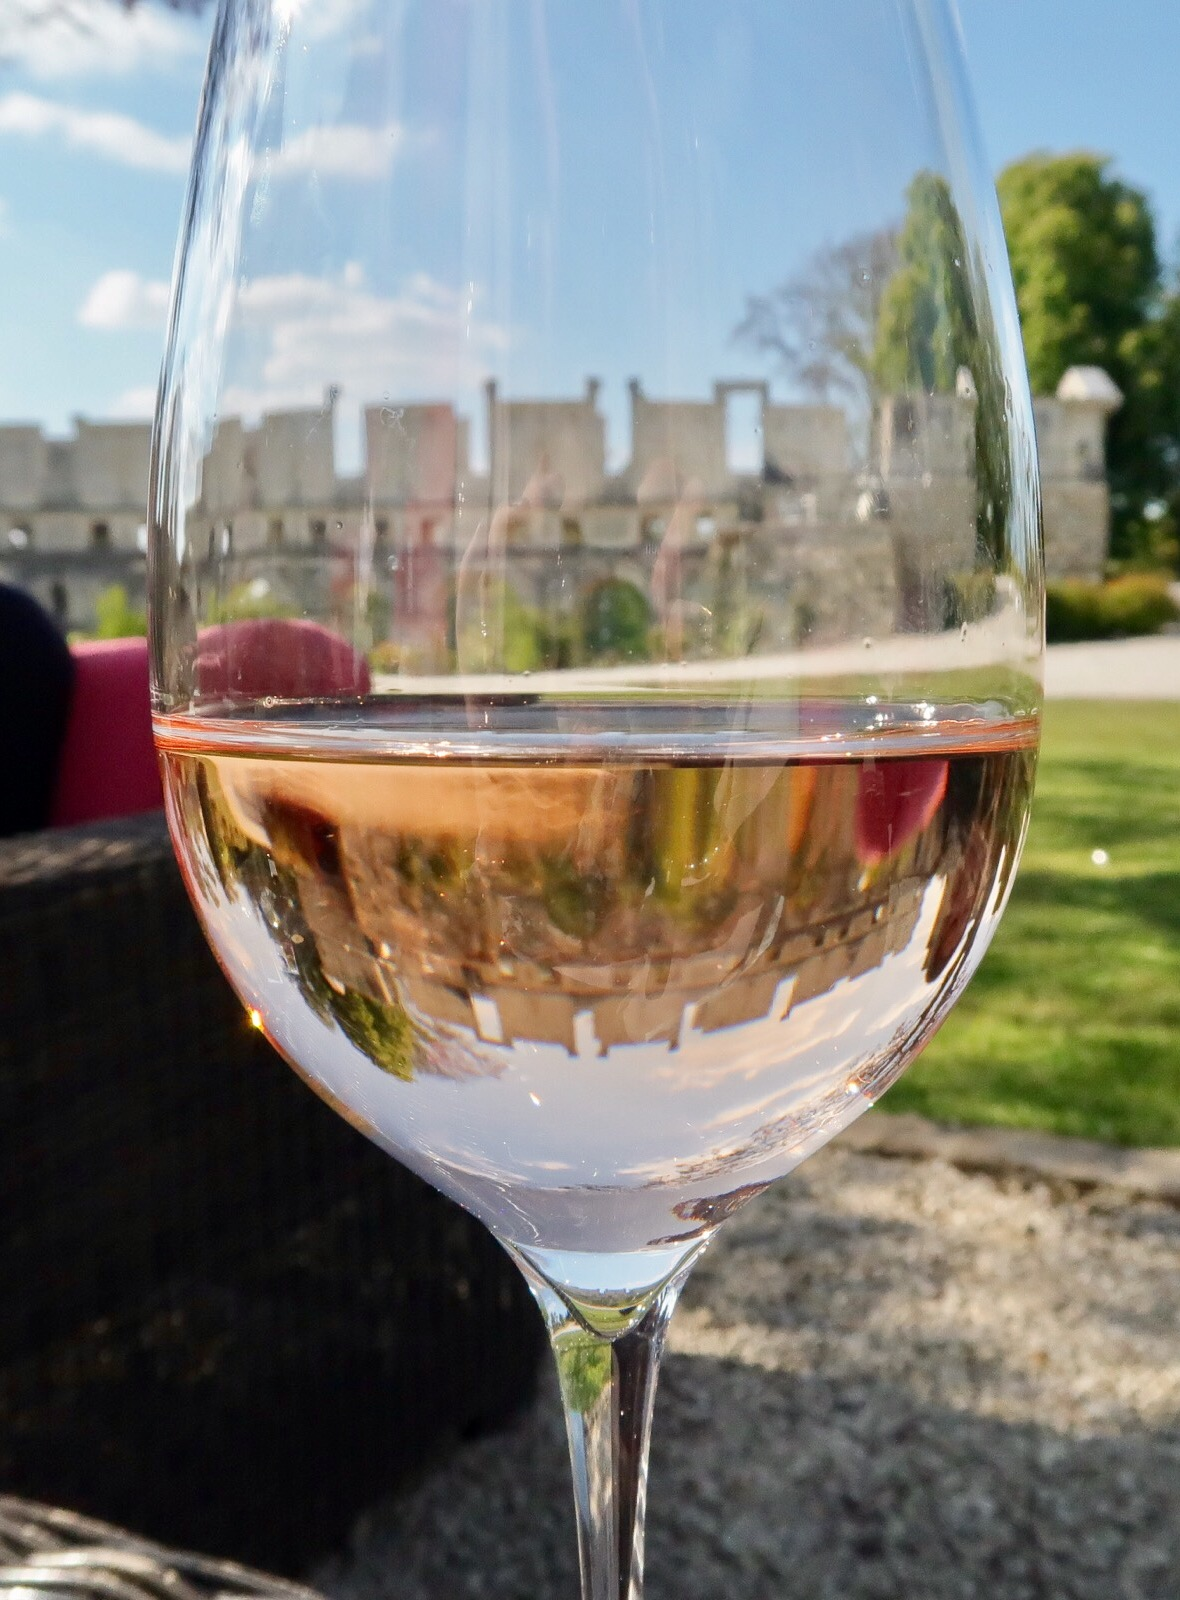 Chateau de Fere ruins, viewed through a rose tinted wine glass!